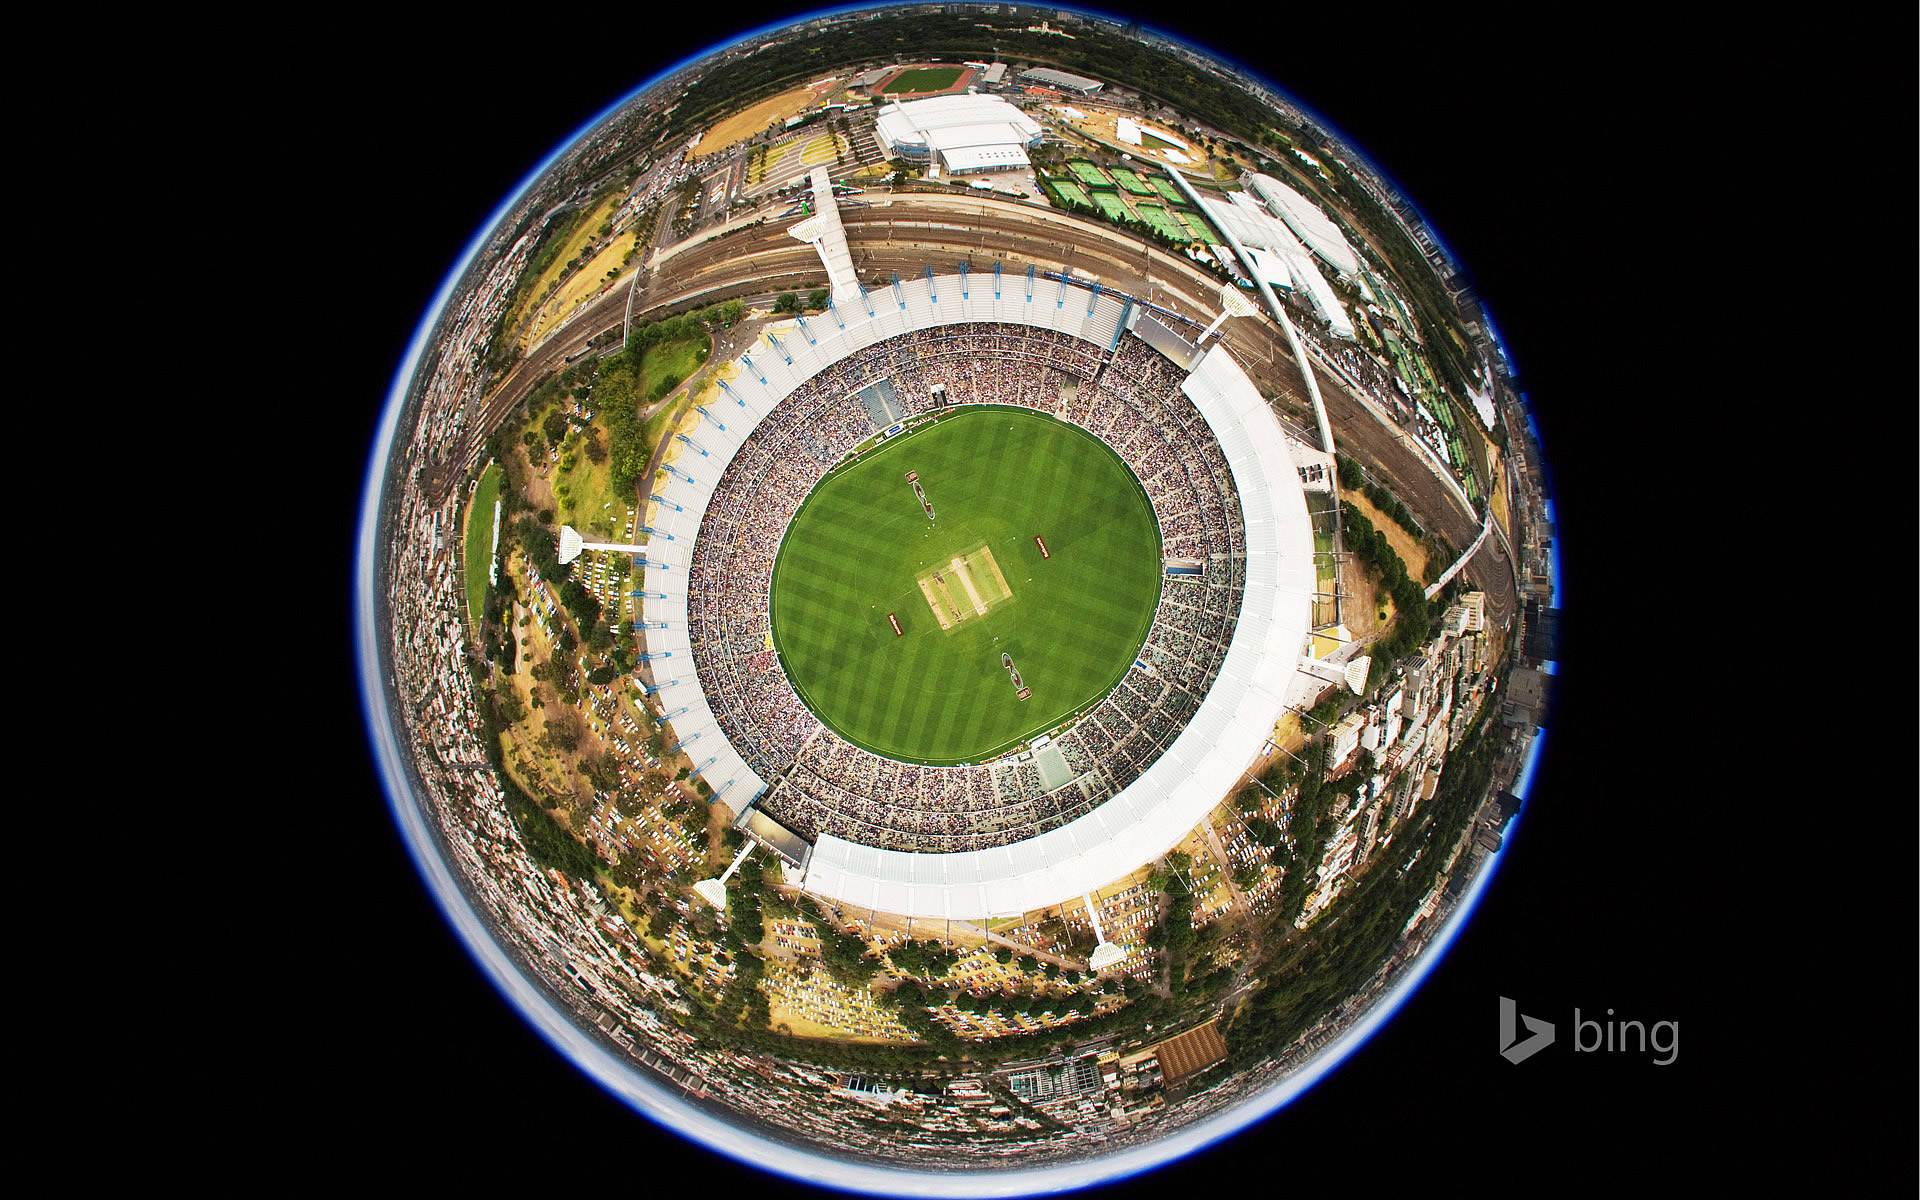 Melbourne Cricket Ground in Victoria, Australia